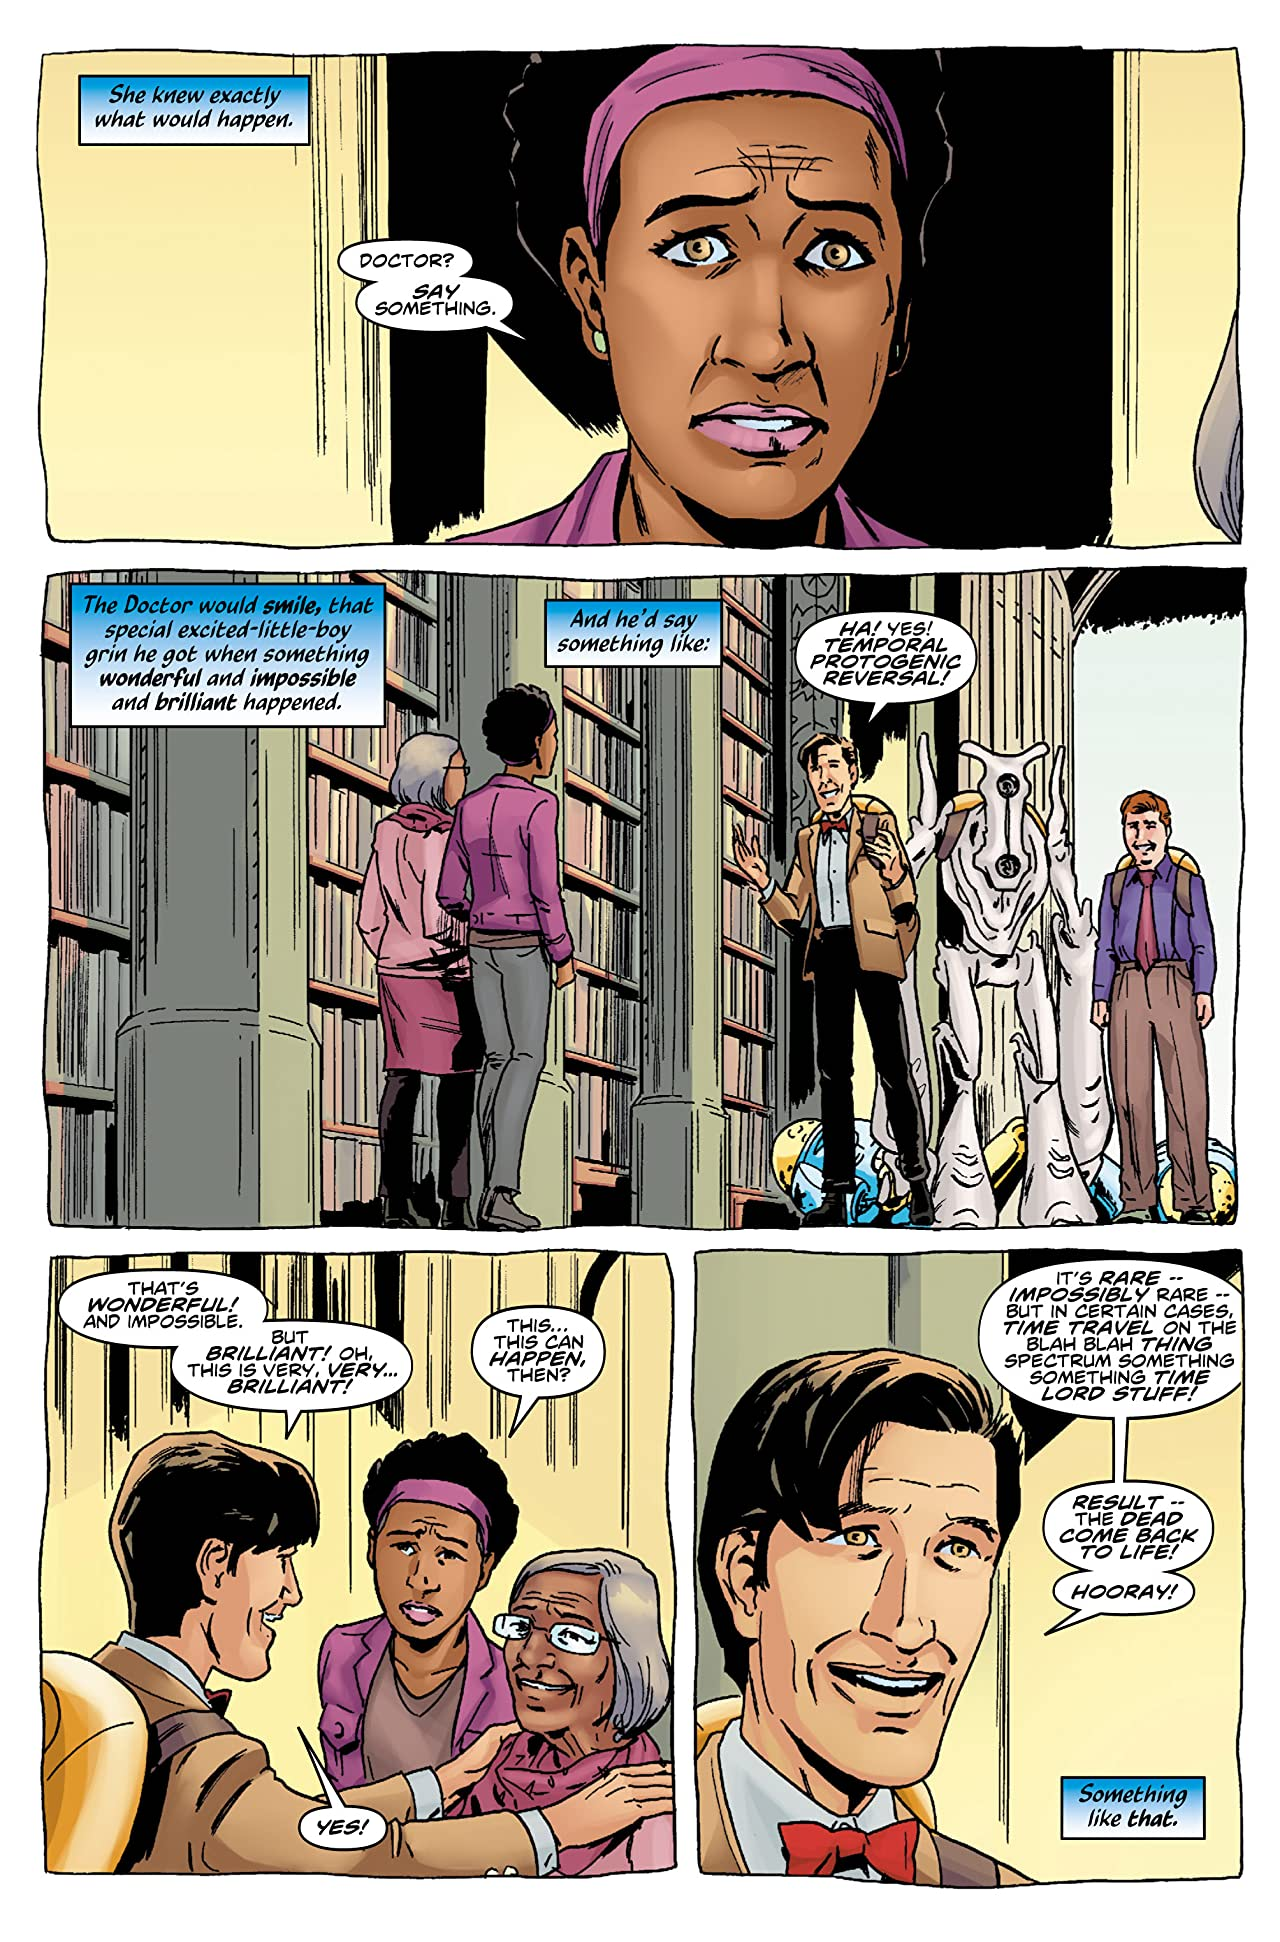 Doctor Who: The Eleventh Doctor #8